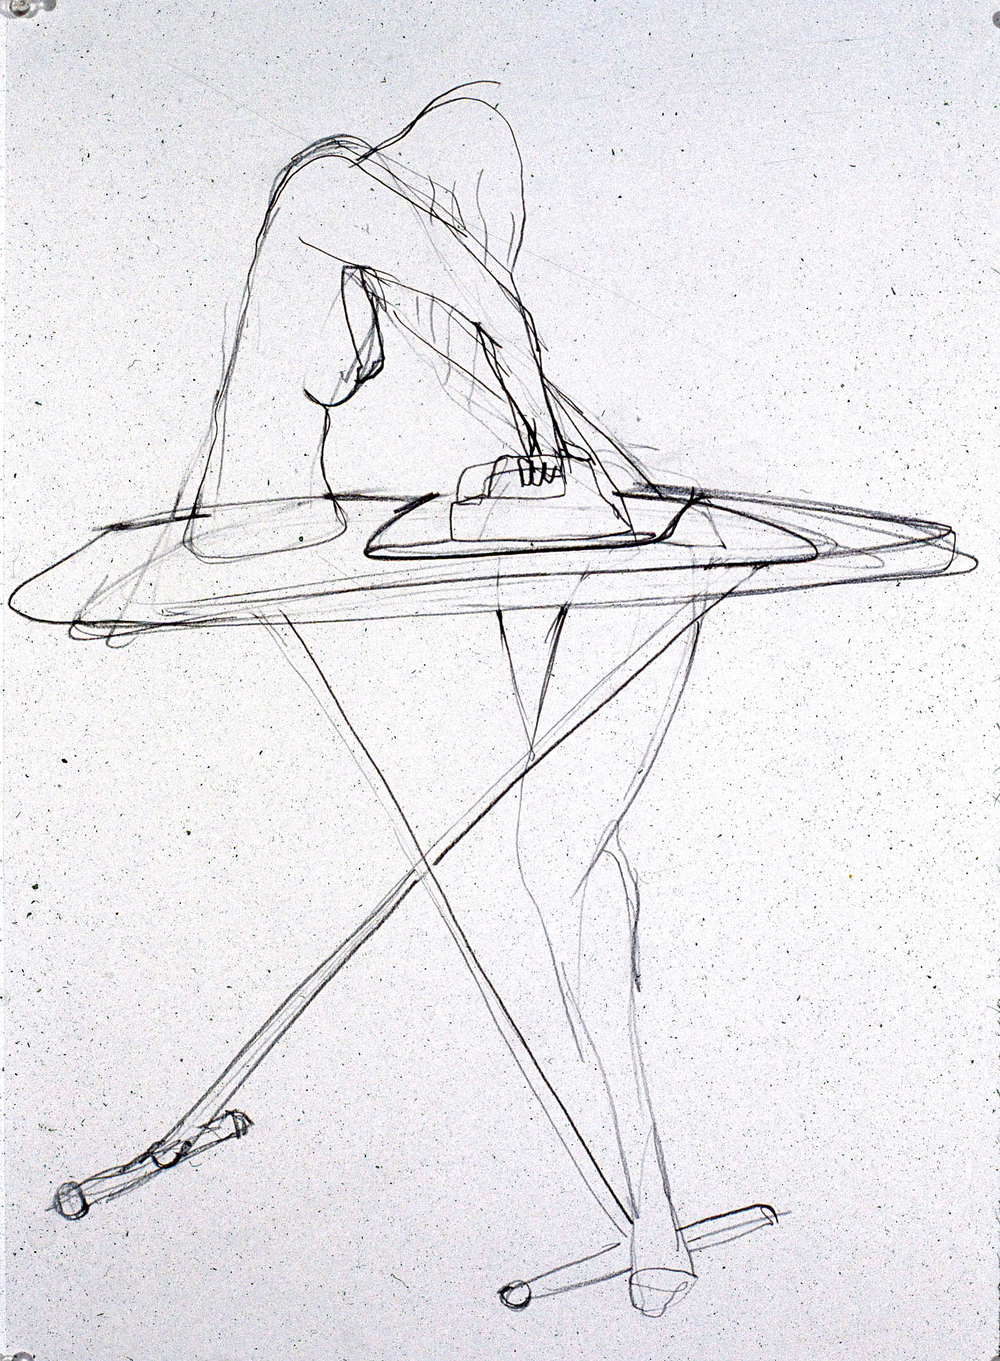 2005  Graphite on paper  24x18 in.